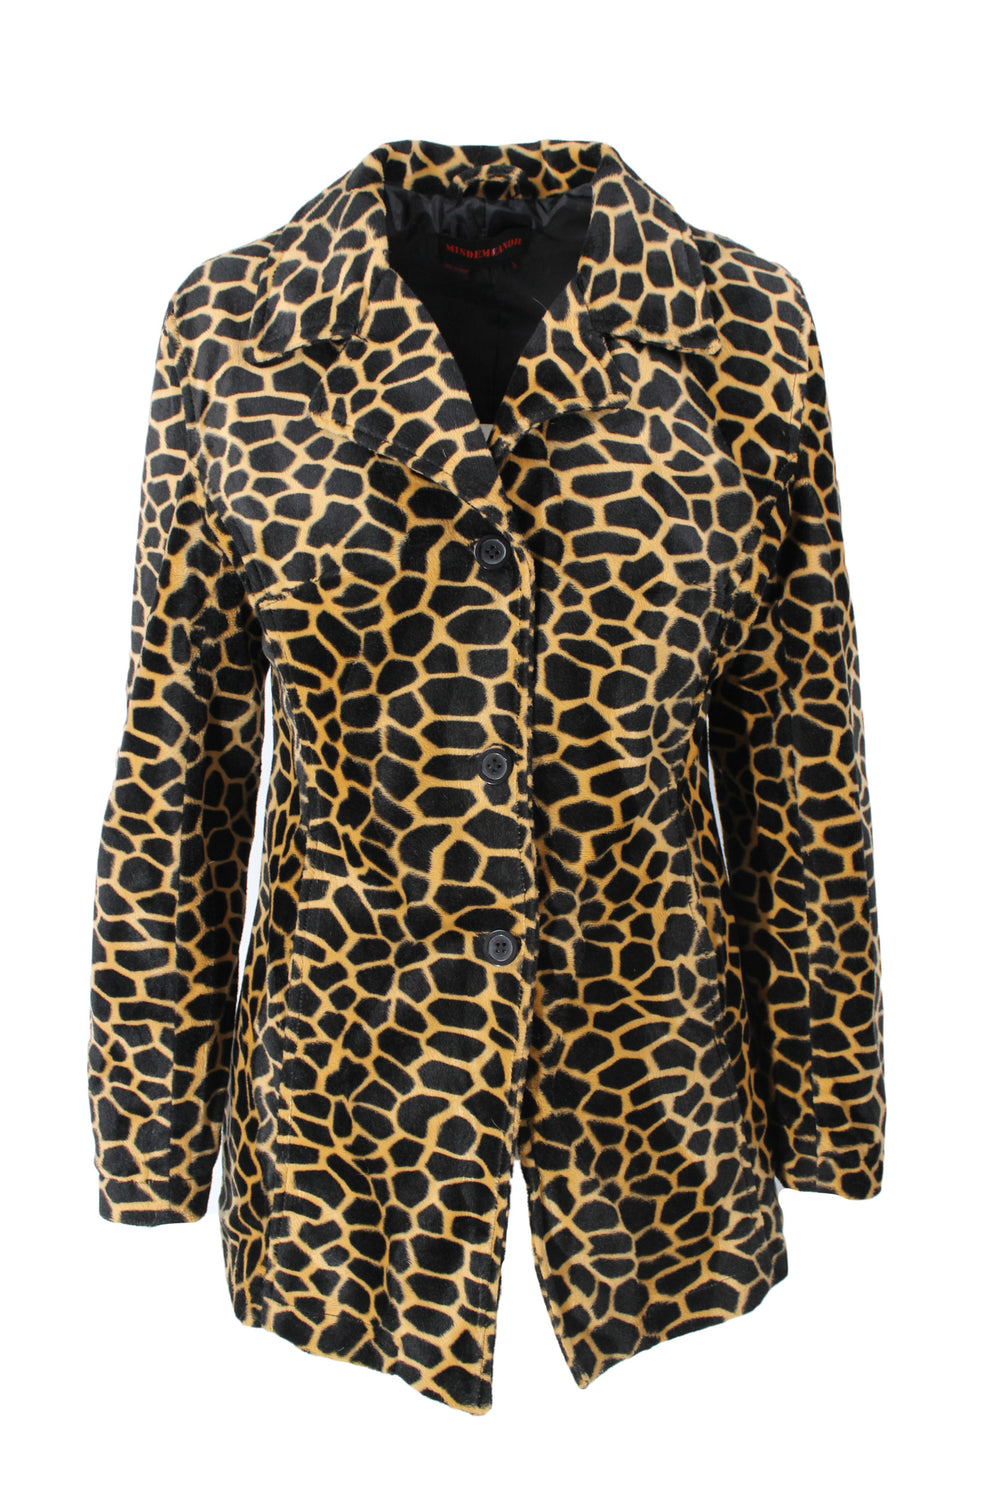 misdemeanor giraffe print collared jacket. features button down closure & two pockets.